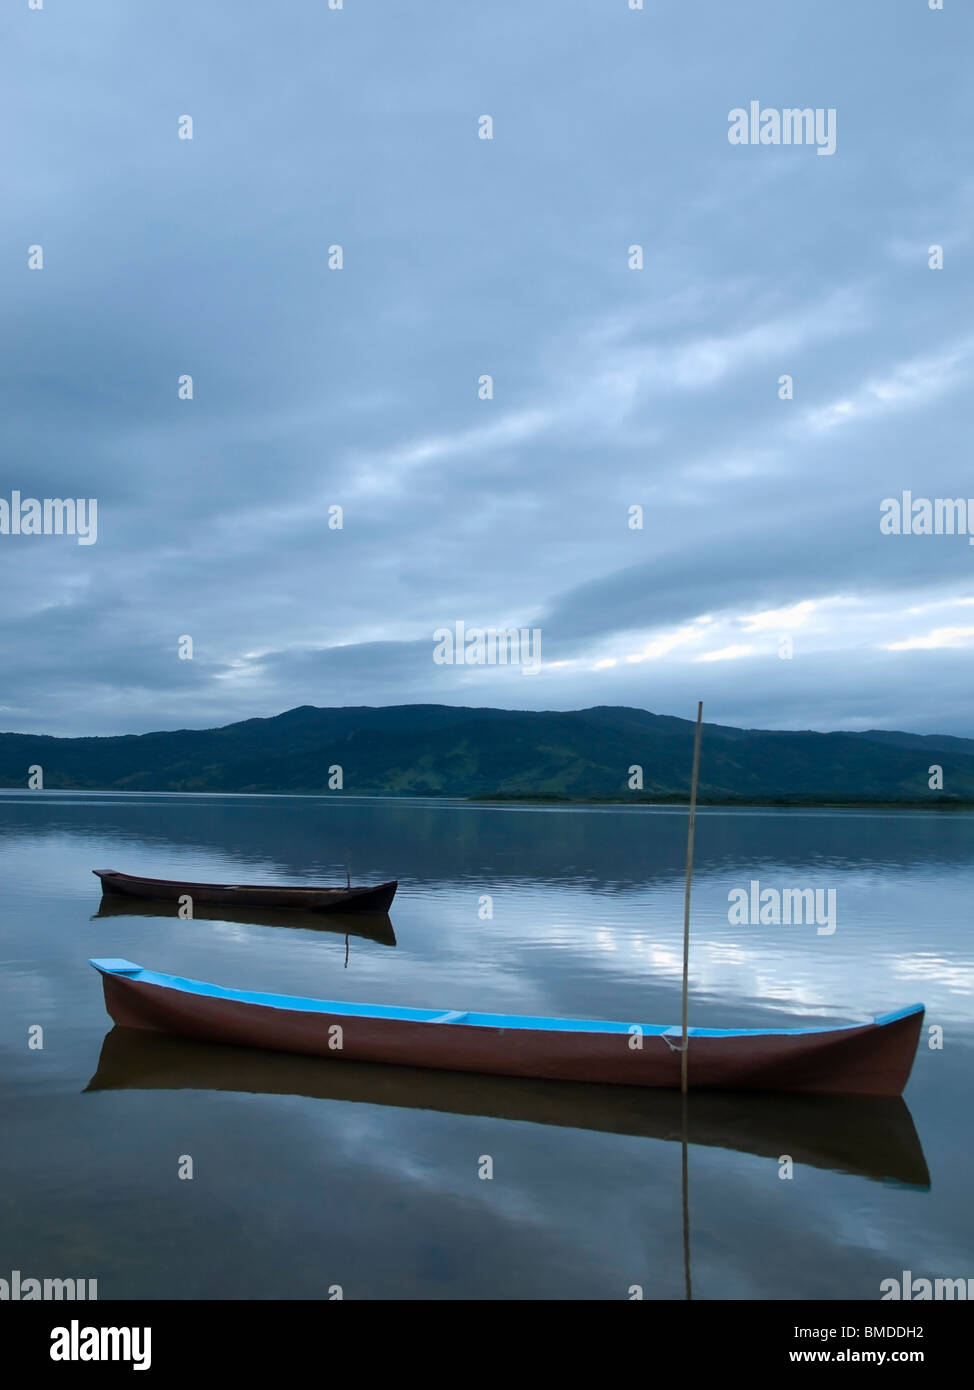 Tow boats at a lagoon at the early morning. - Stock Image